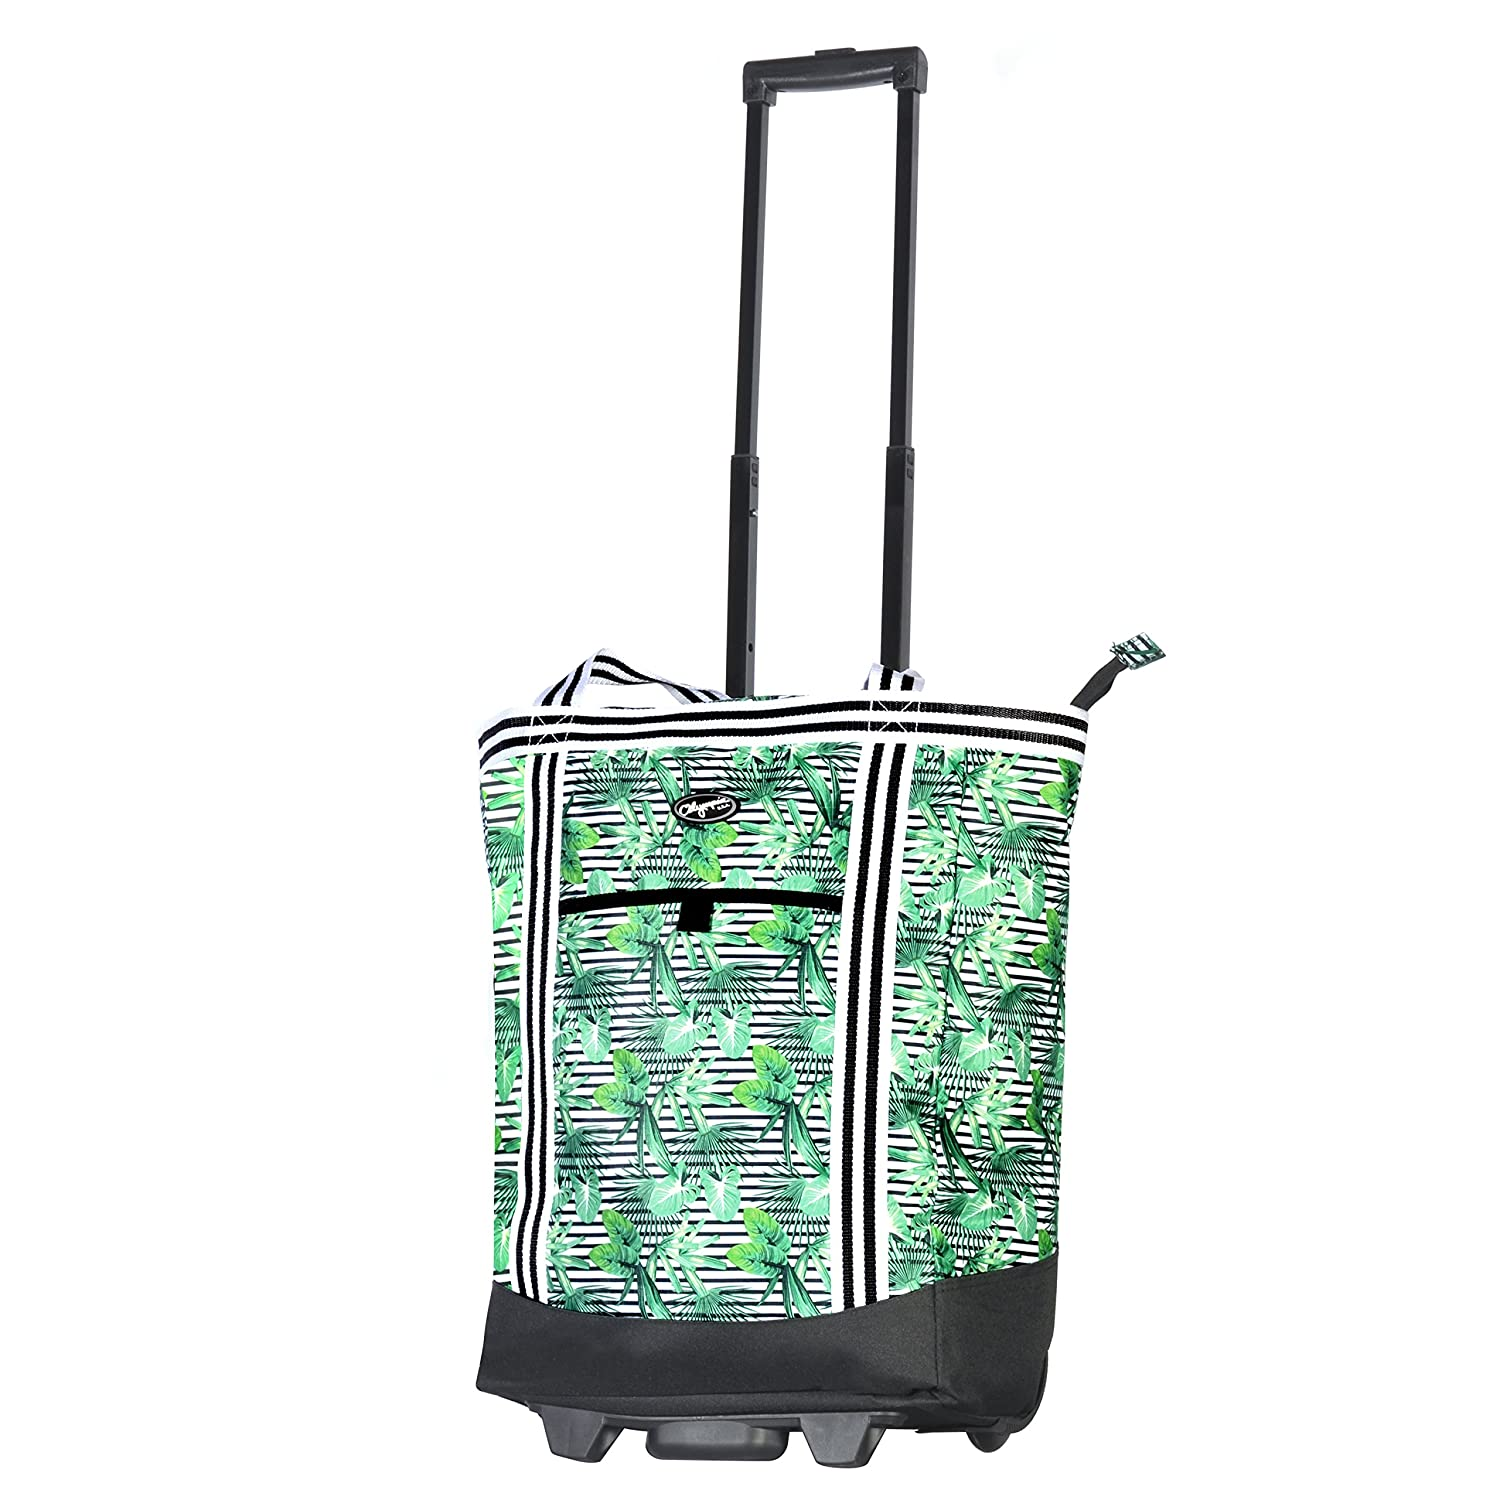 78d9a7a84 Amazon.com | Olympia 2-Piece Rolling Shopper Tote and Cooler Bag, Rain  Forest | Carry-Ons